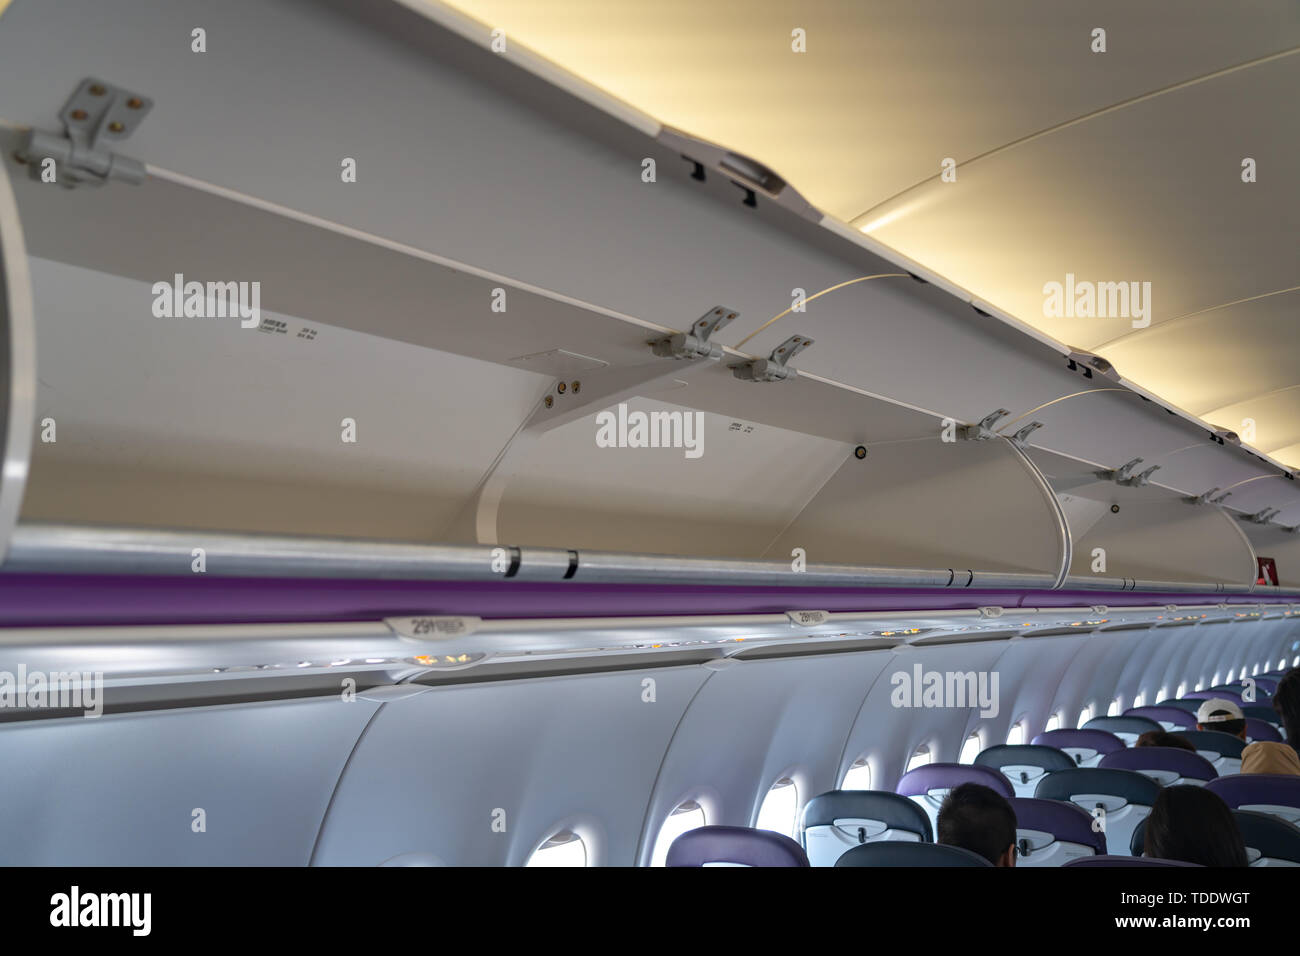 Carry-on luggage in overhead storage compartment on commercial airplane. detail shot of an airplane cabin interior. Travel concept with copy space - Stock Image